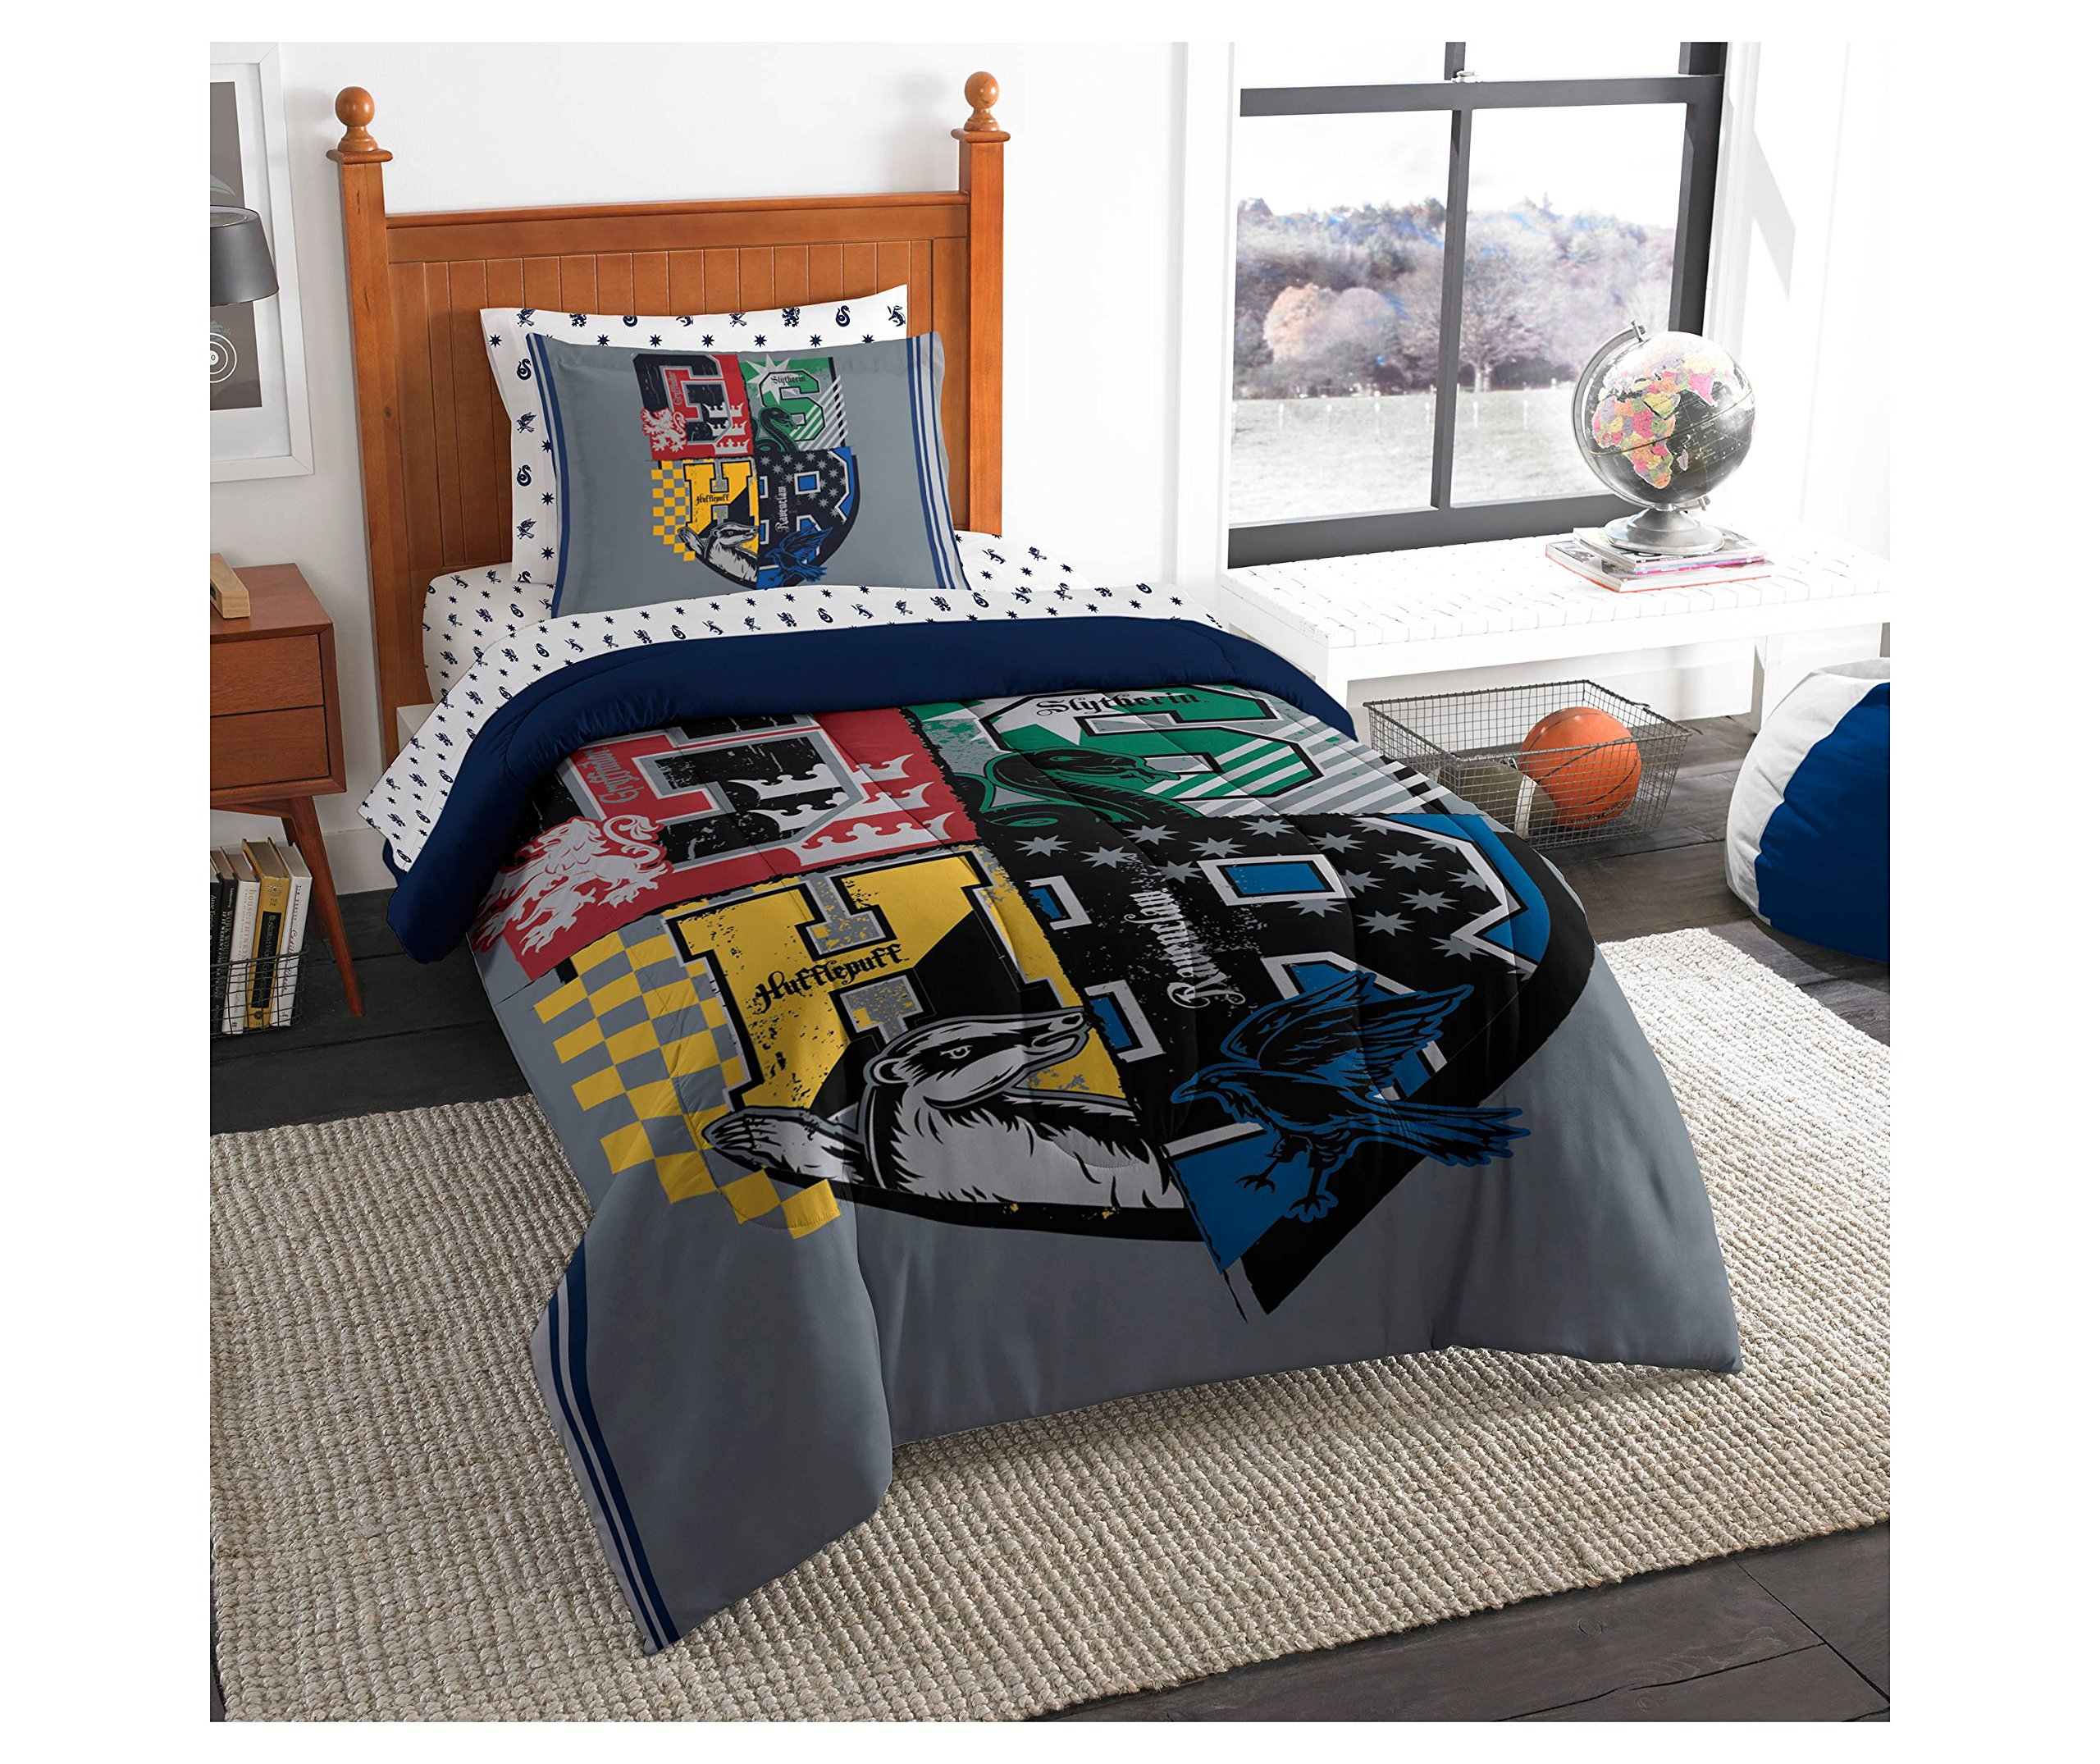 Harry Potter Comforter(Twin) and Sheets ~Very Hard to Find~ by Harry Potter & Warner Bros.